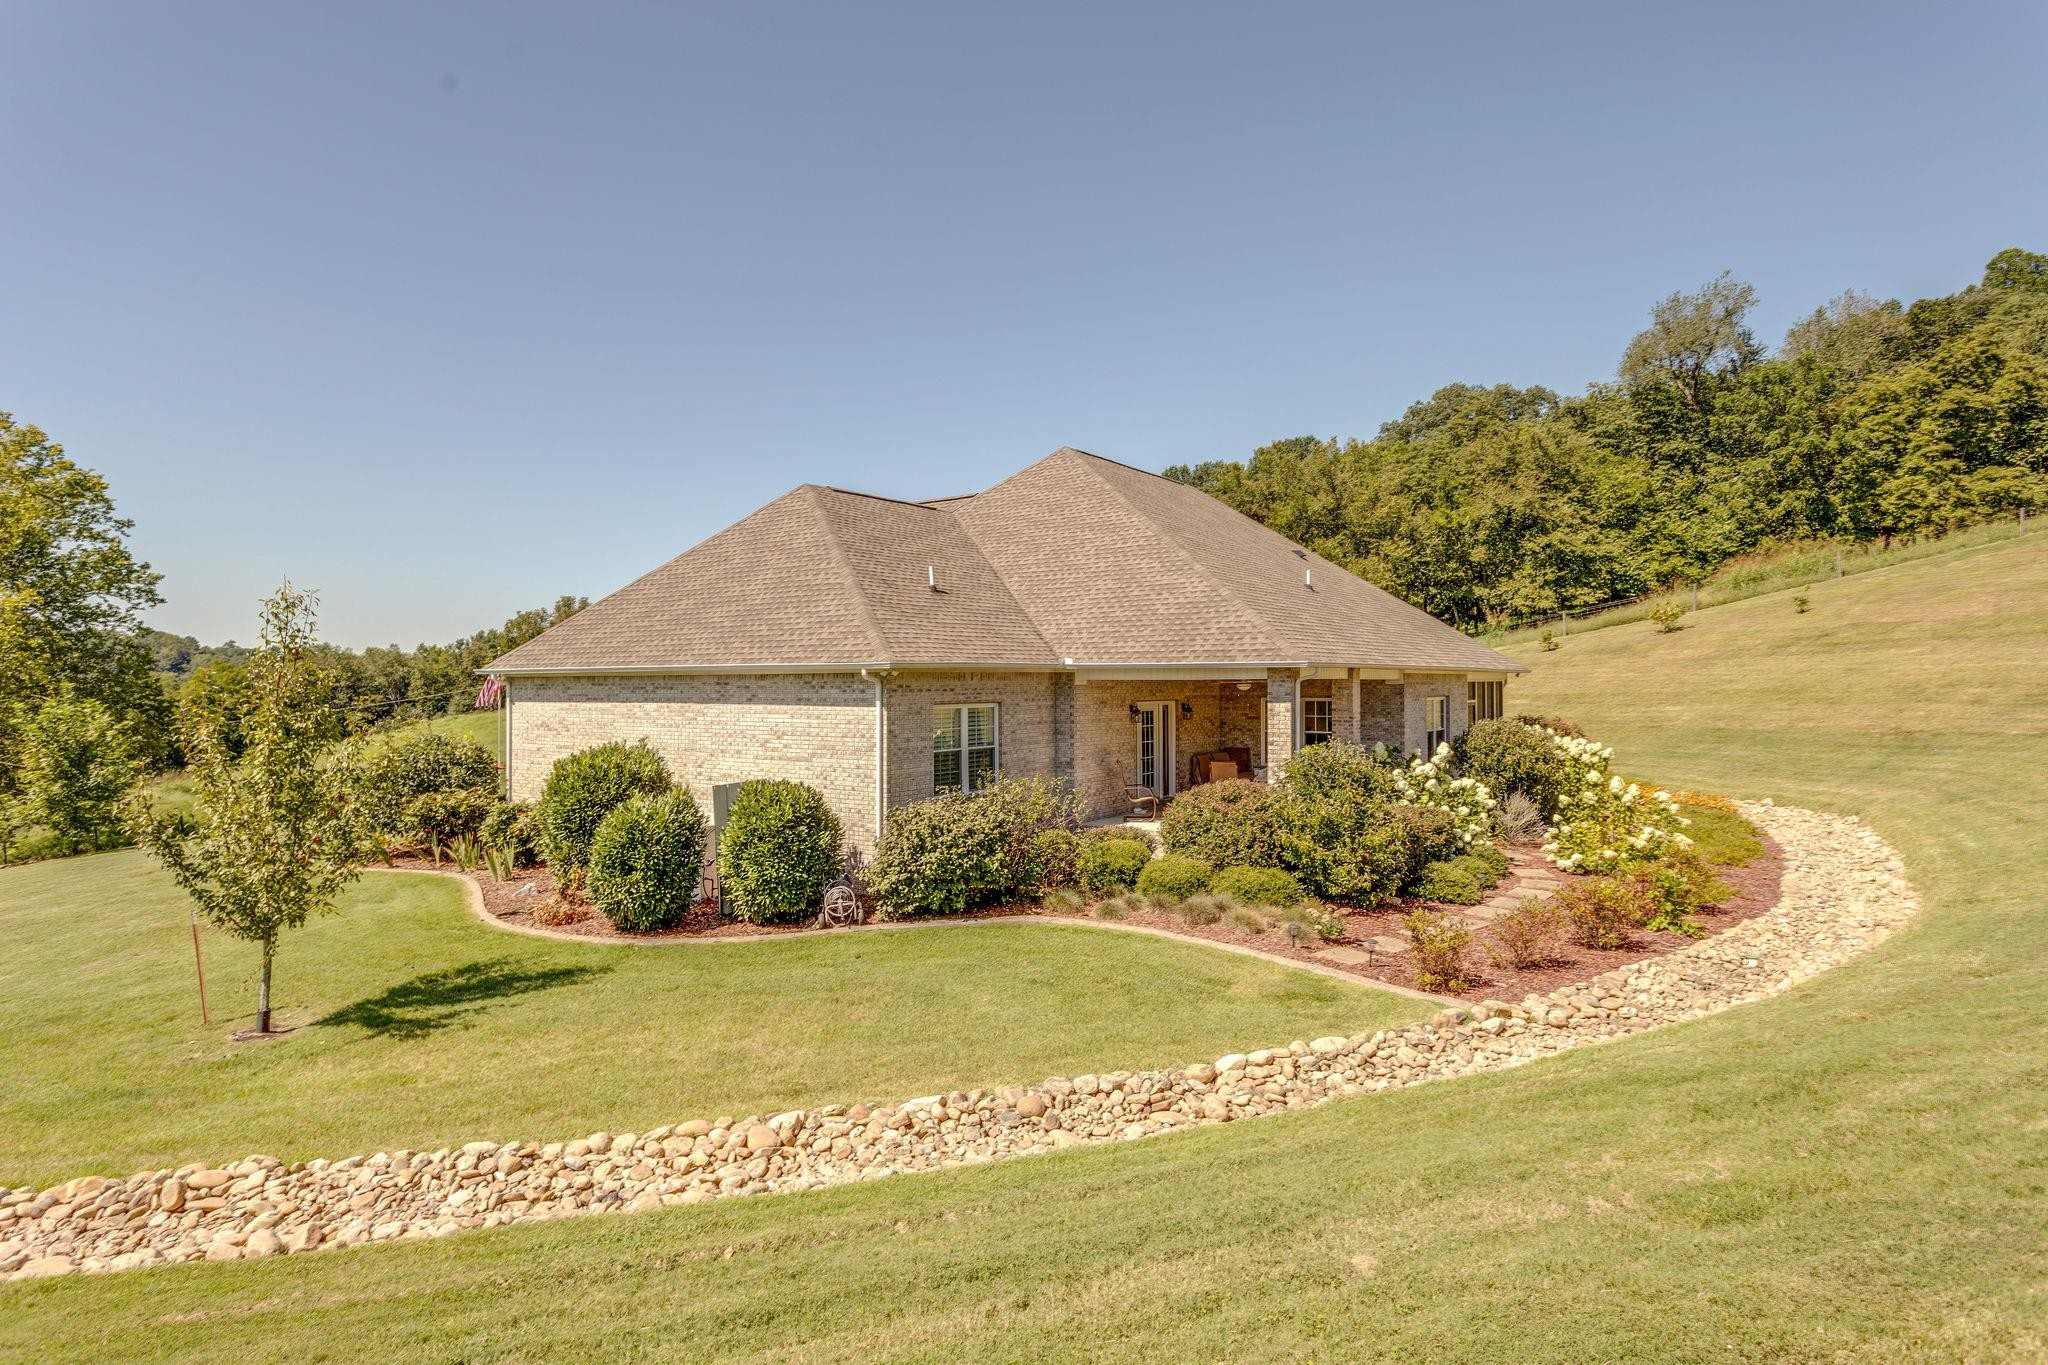 775 Ella West Cir, Lynnville, TN 38472 - Lynnville, TN real estate listing